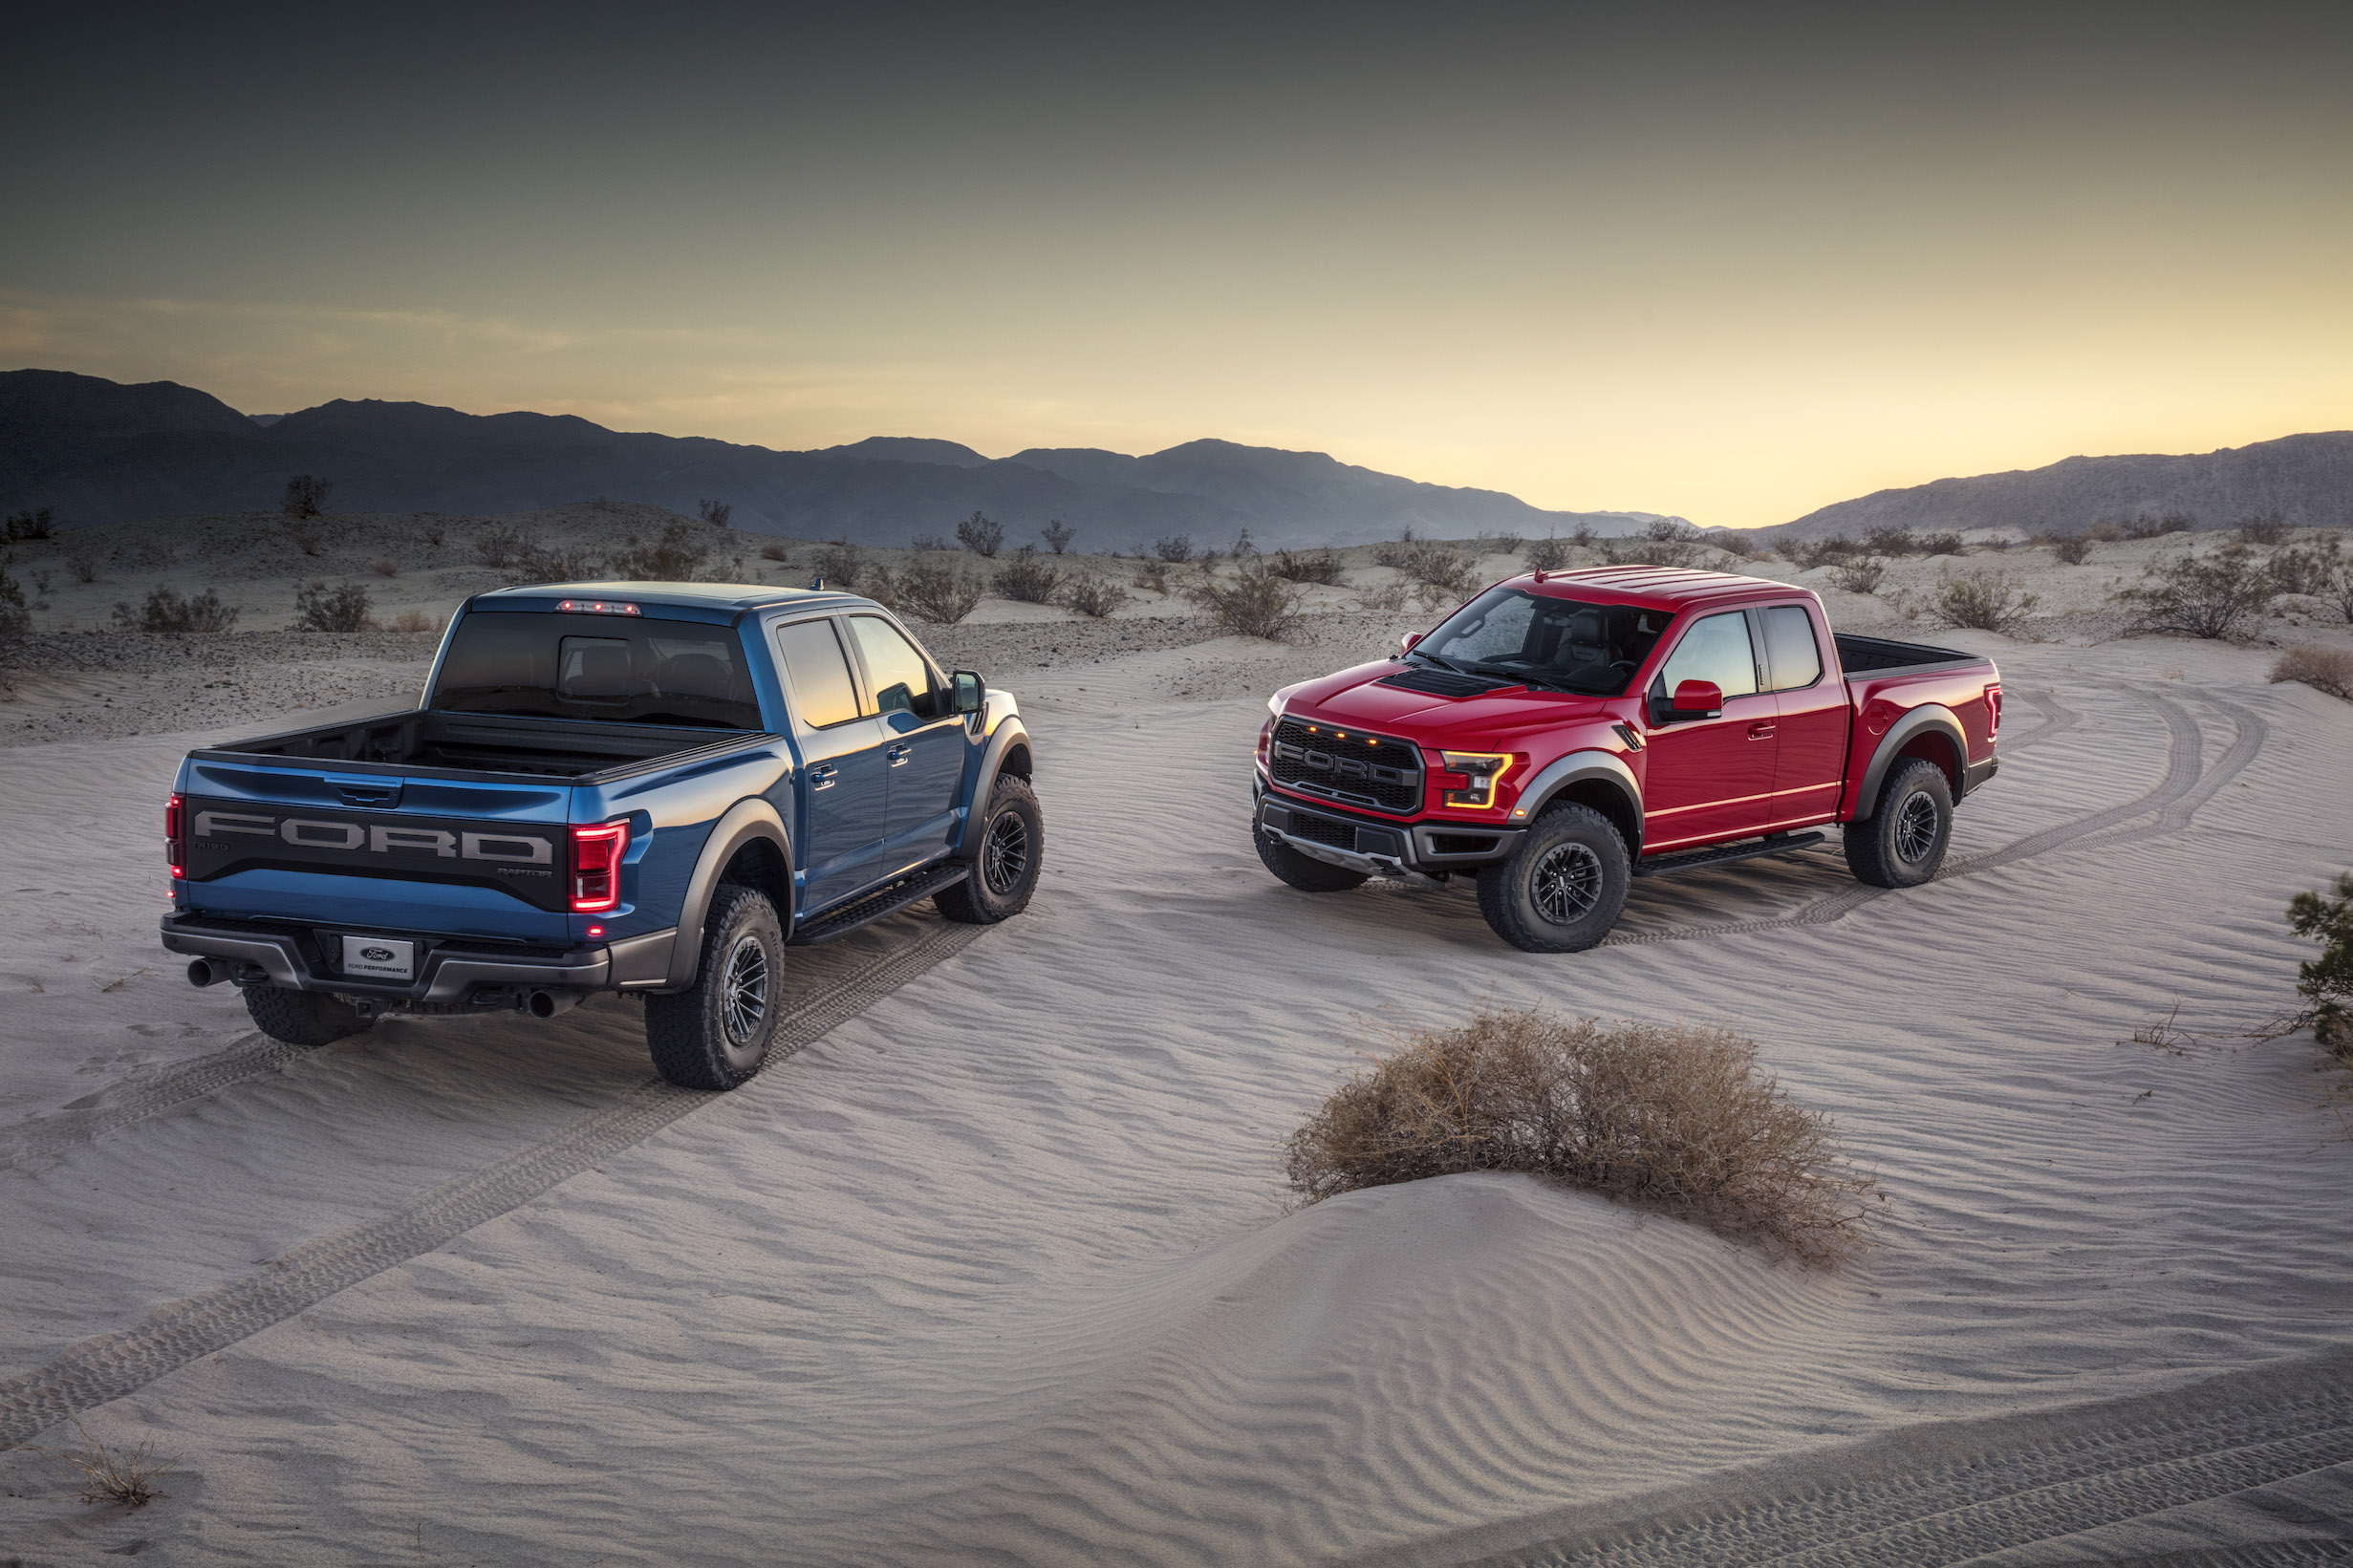 2019 Ford F-150 Raptor Red and Blue Sand Dunes